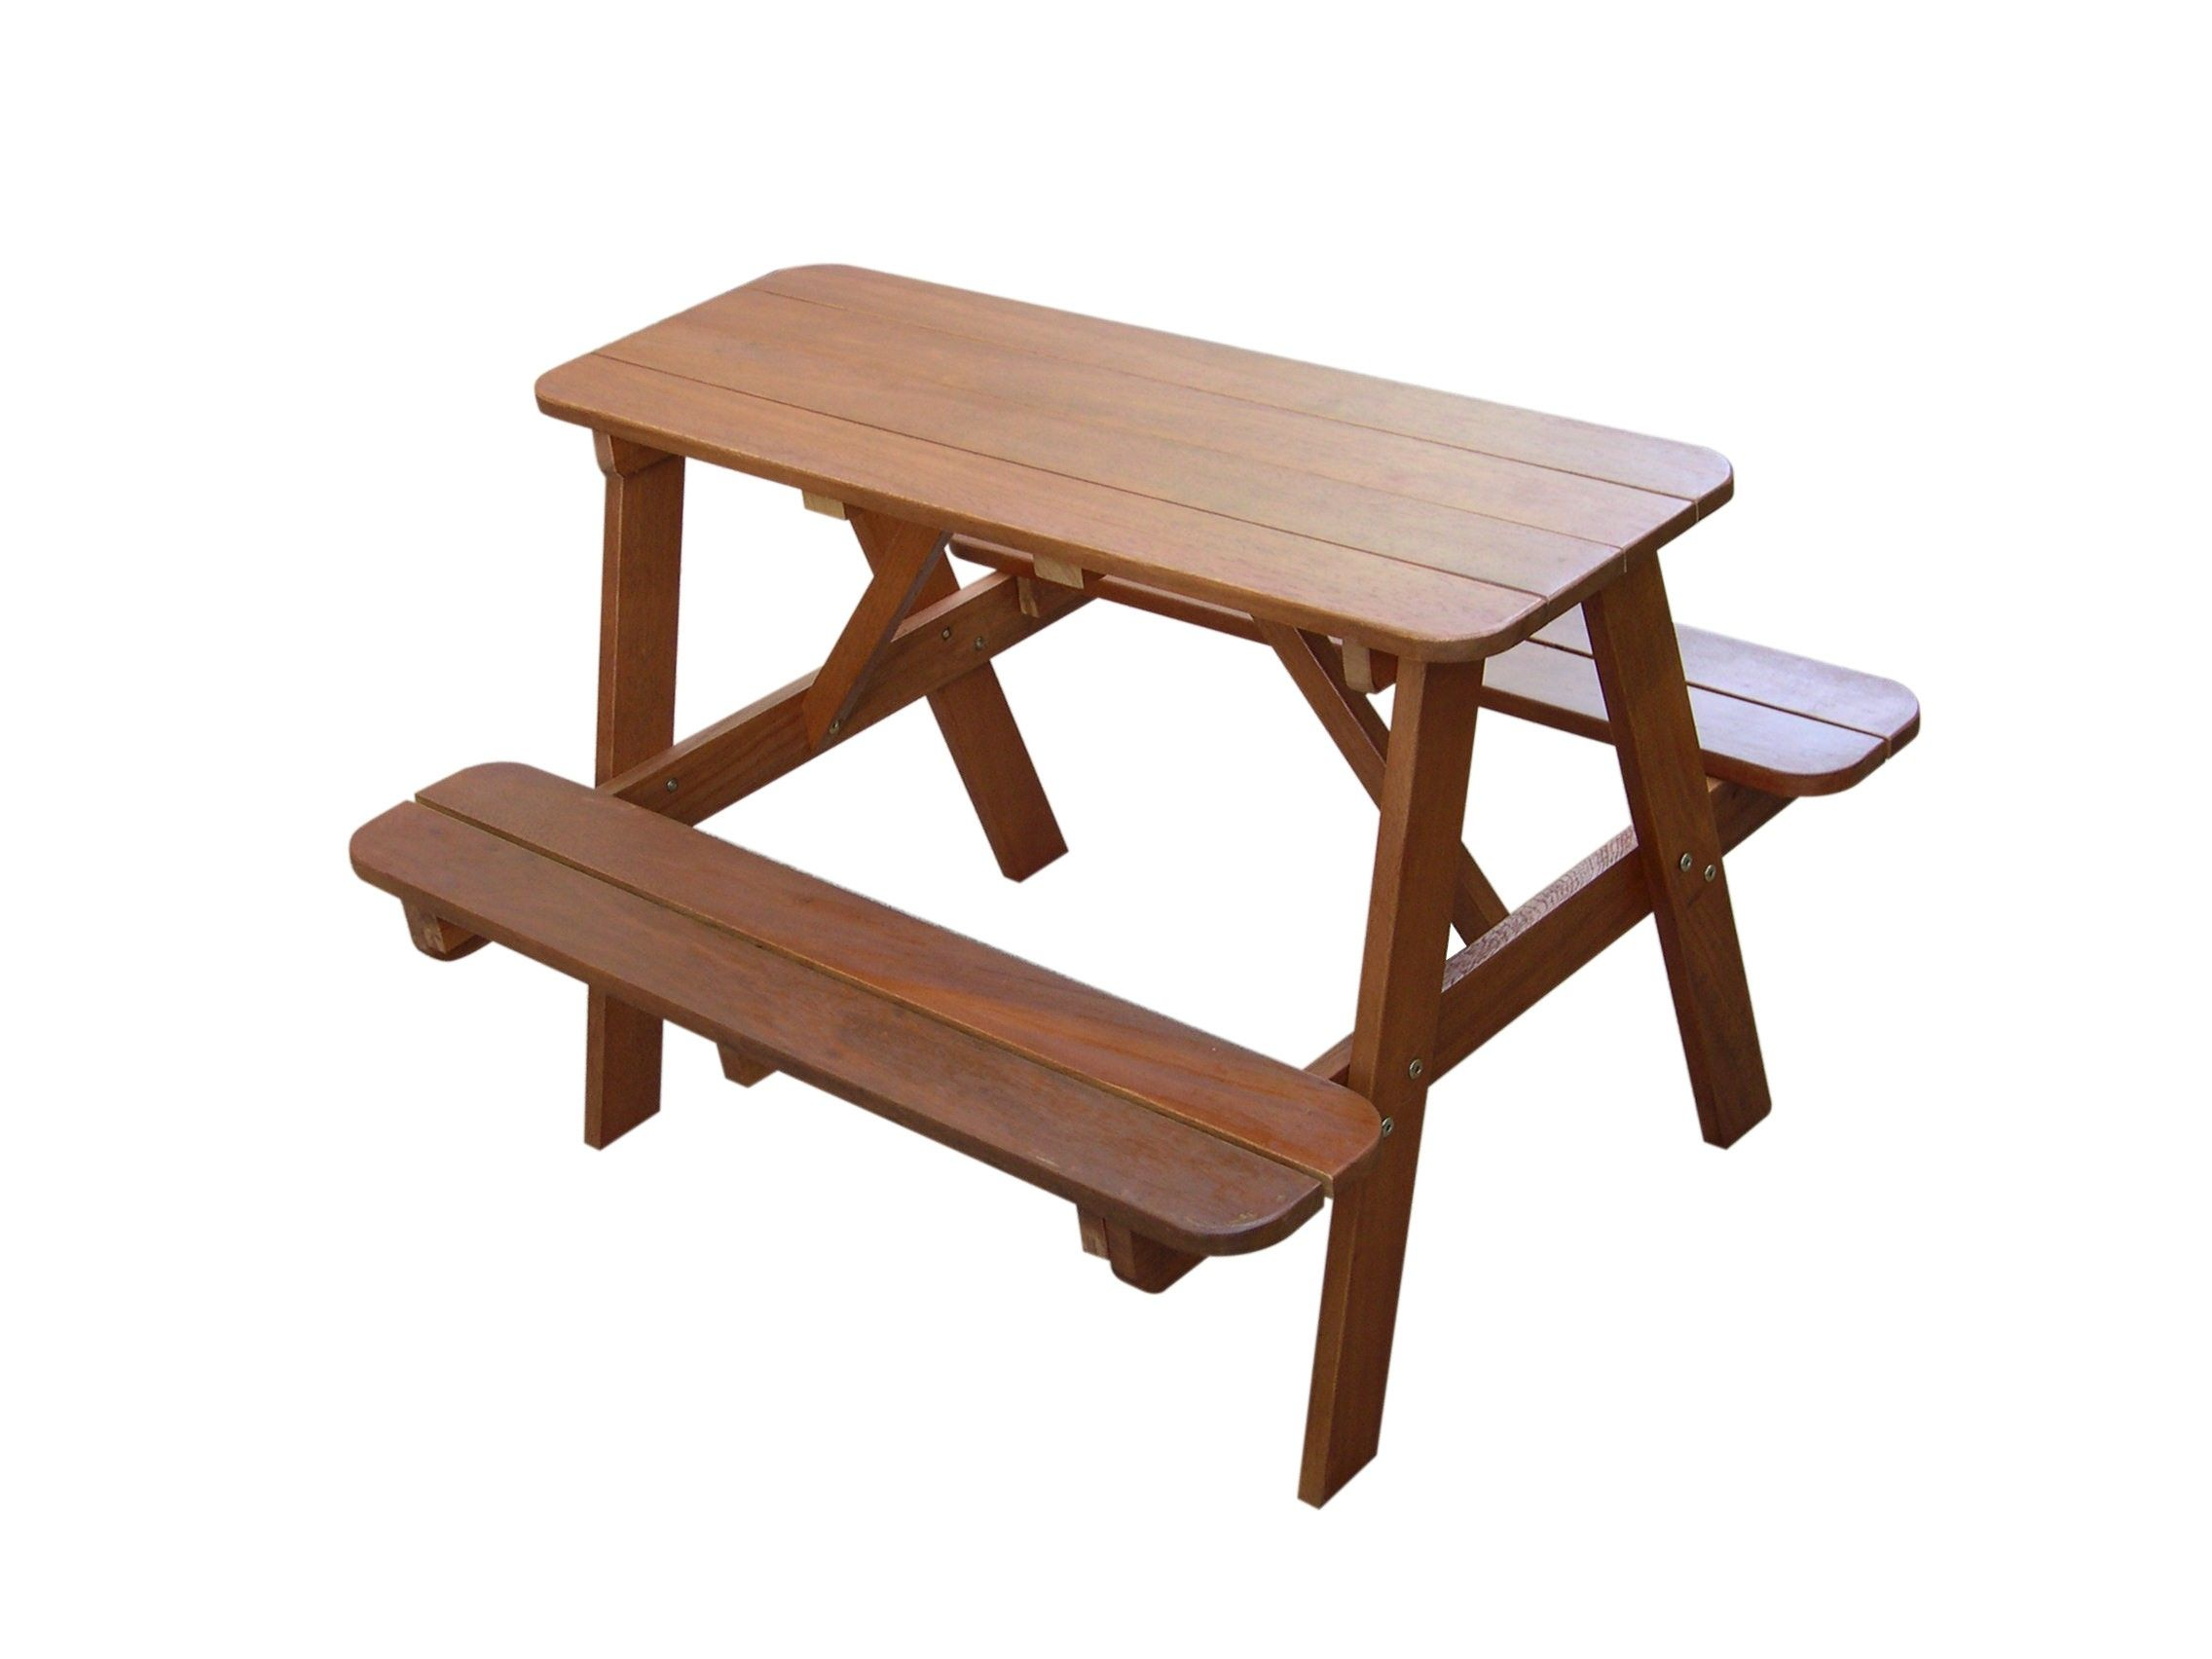 Image result for wooden toddler table and chairs